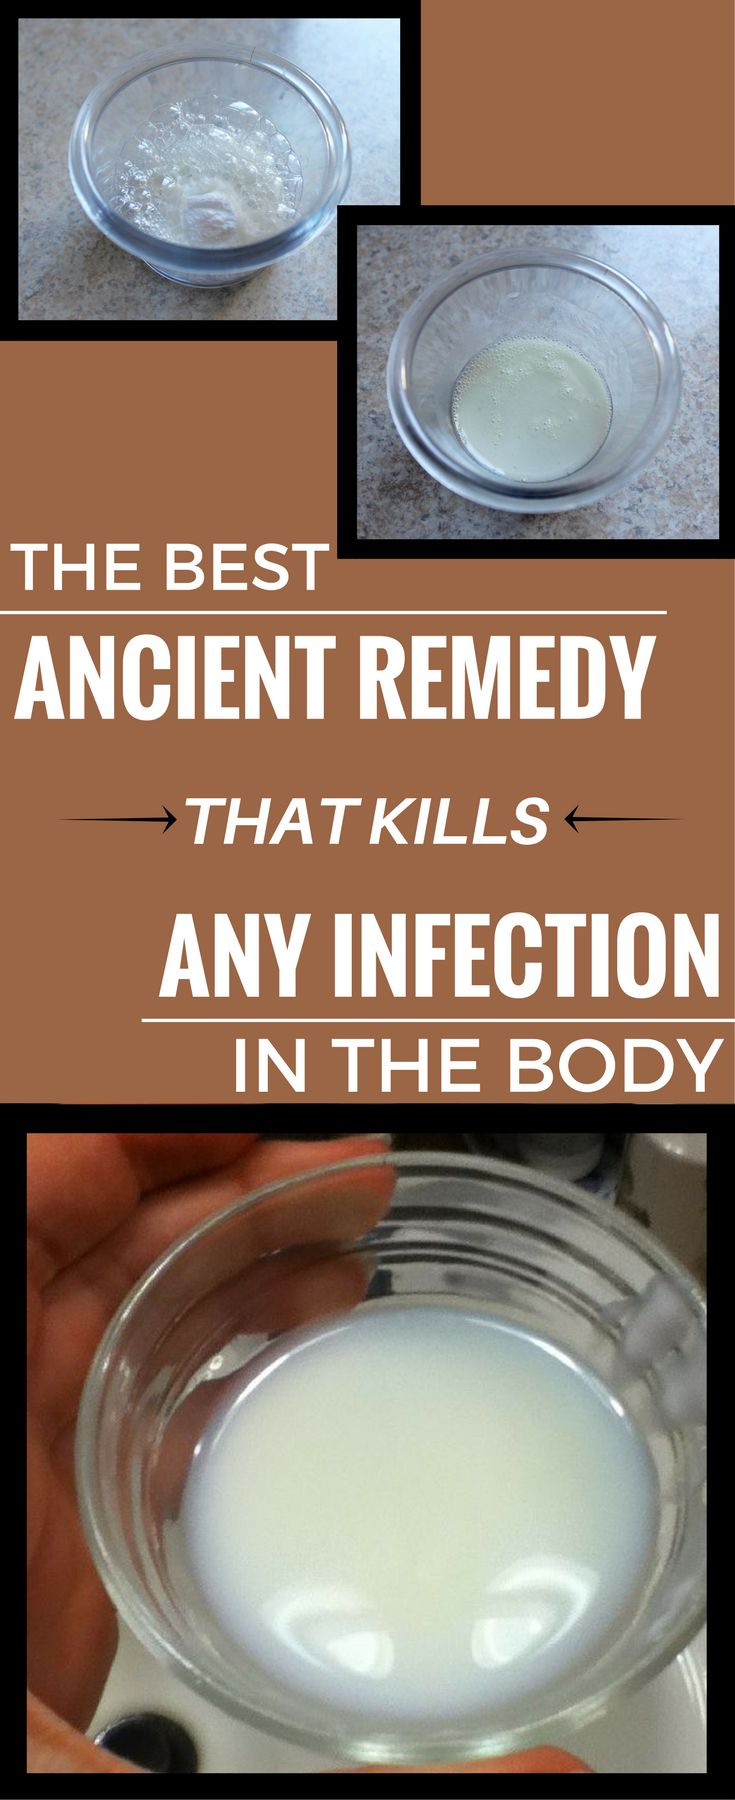 The Best Ancient Natural Remedy That Kills Any Infection In The Body. Also, if you follow this treatment you can prevent cancer because of its therapeutic effects.